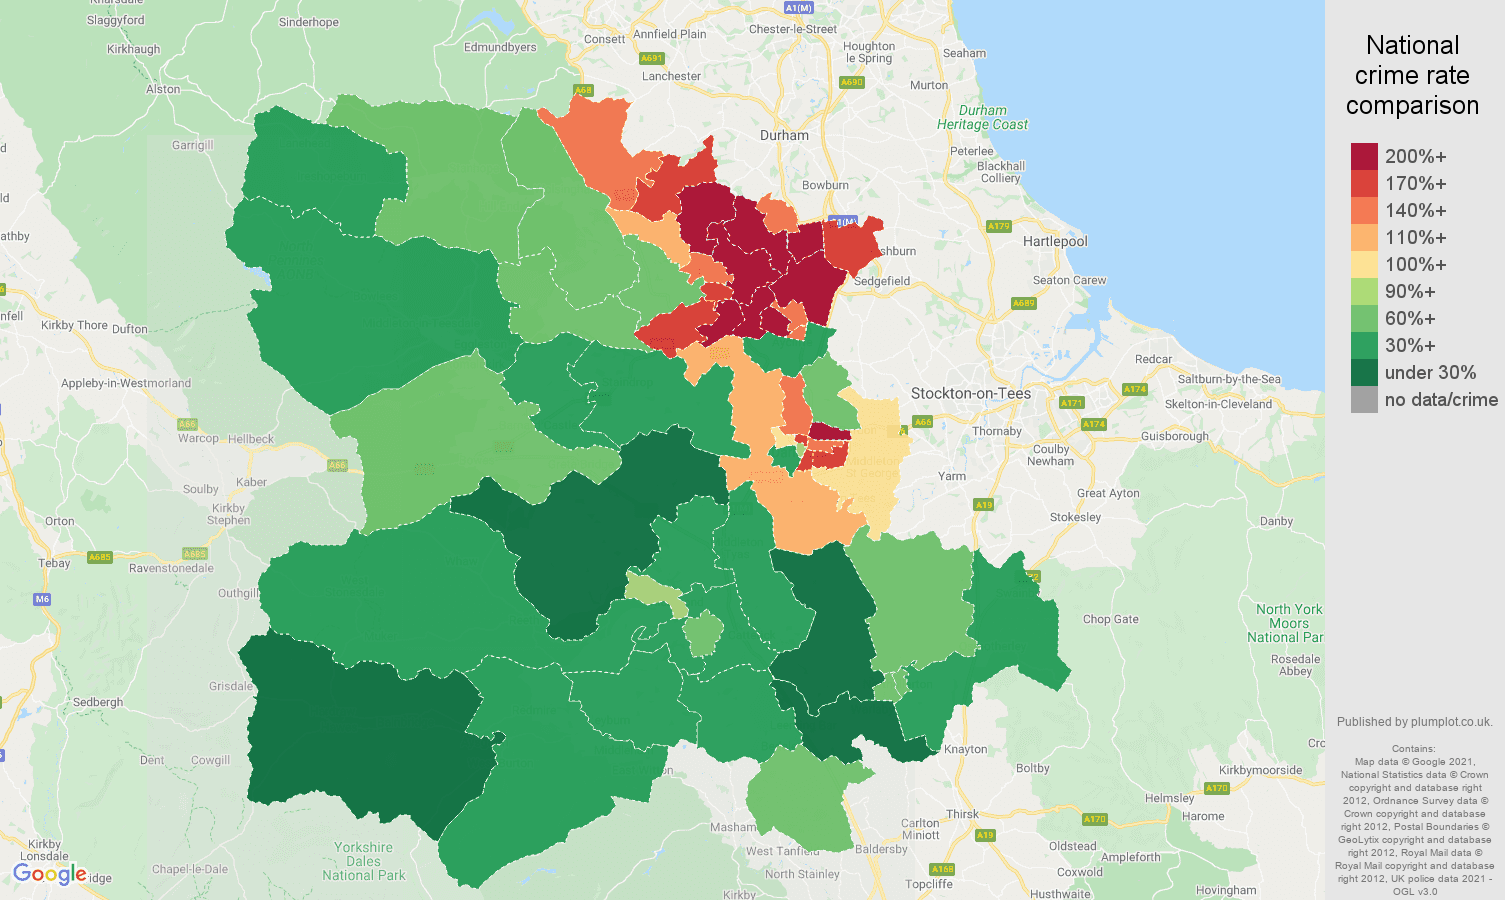 Darlington violent crime rate comparison map